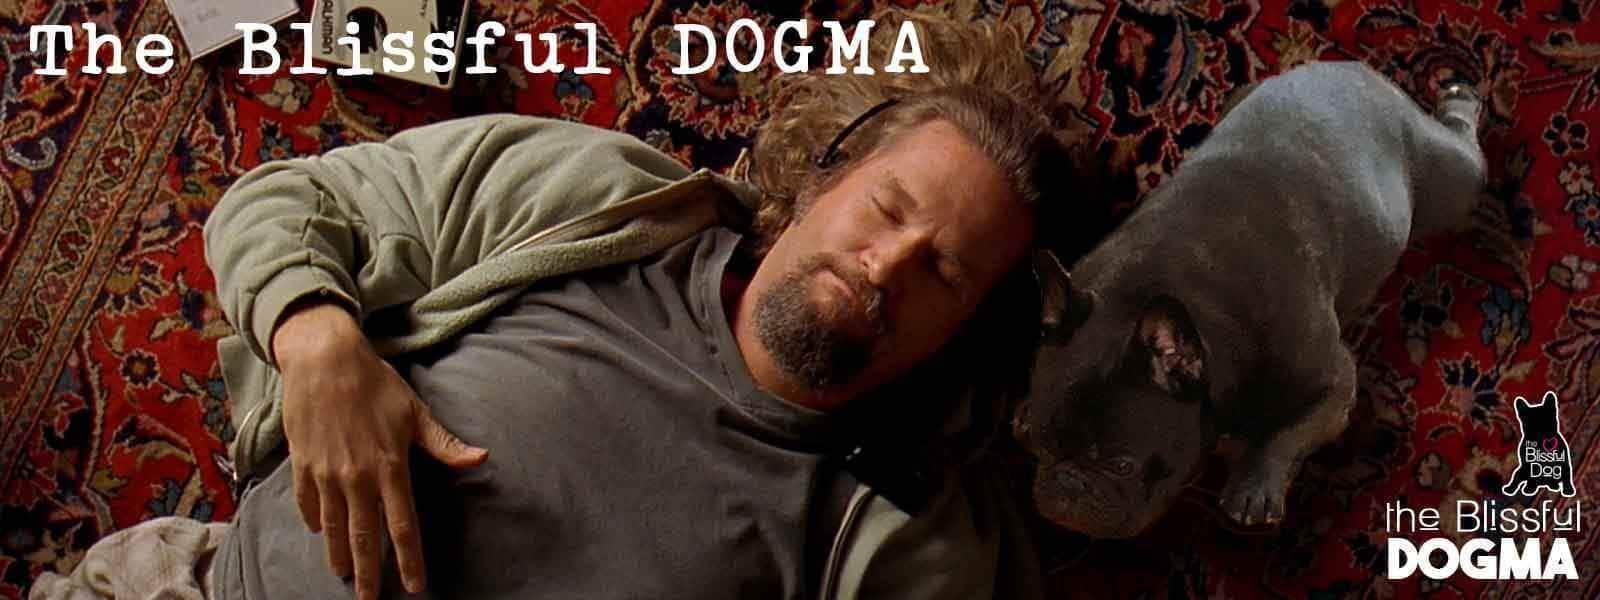 the blissful dogma abides